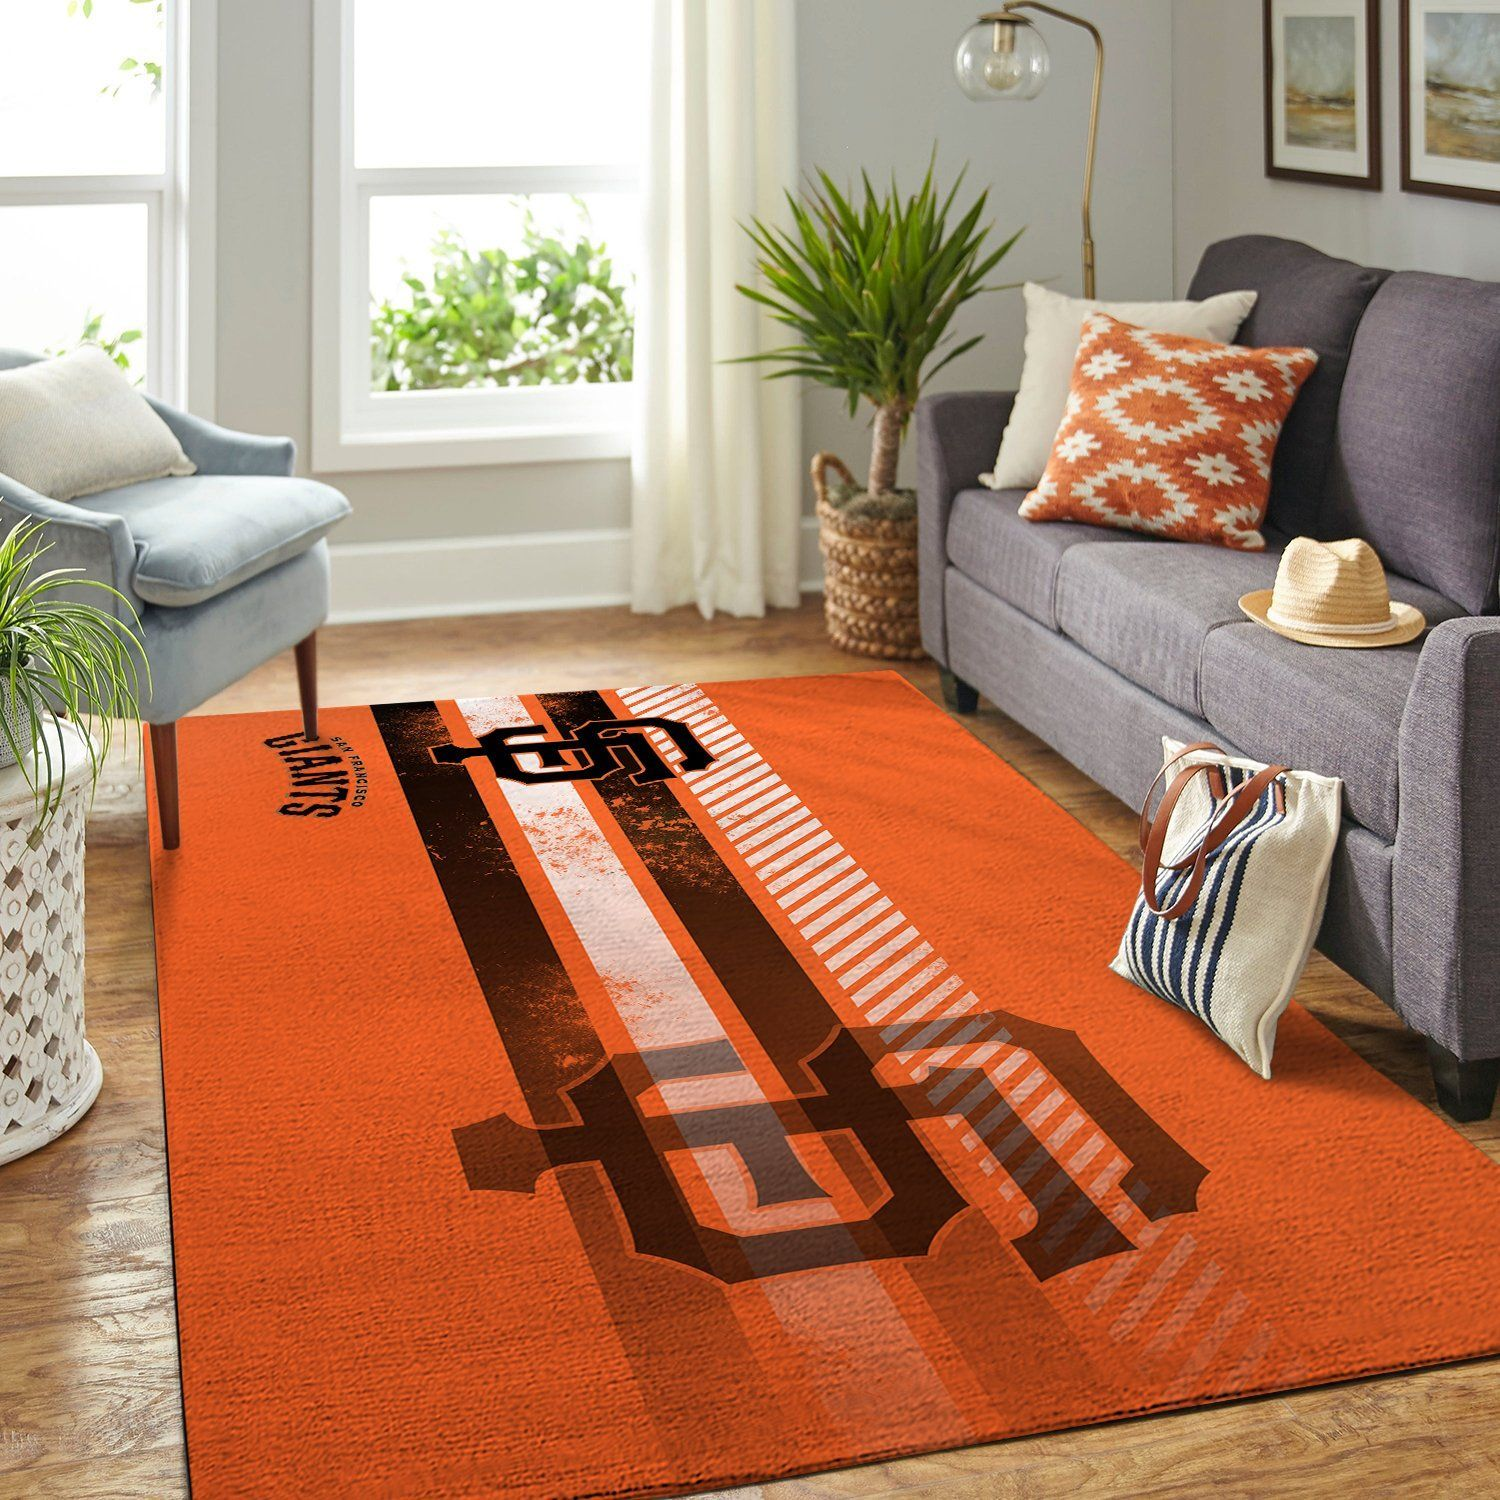 Amazon San Francisco Giants Living Room Area No4901 Rug